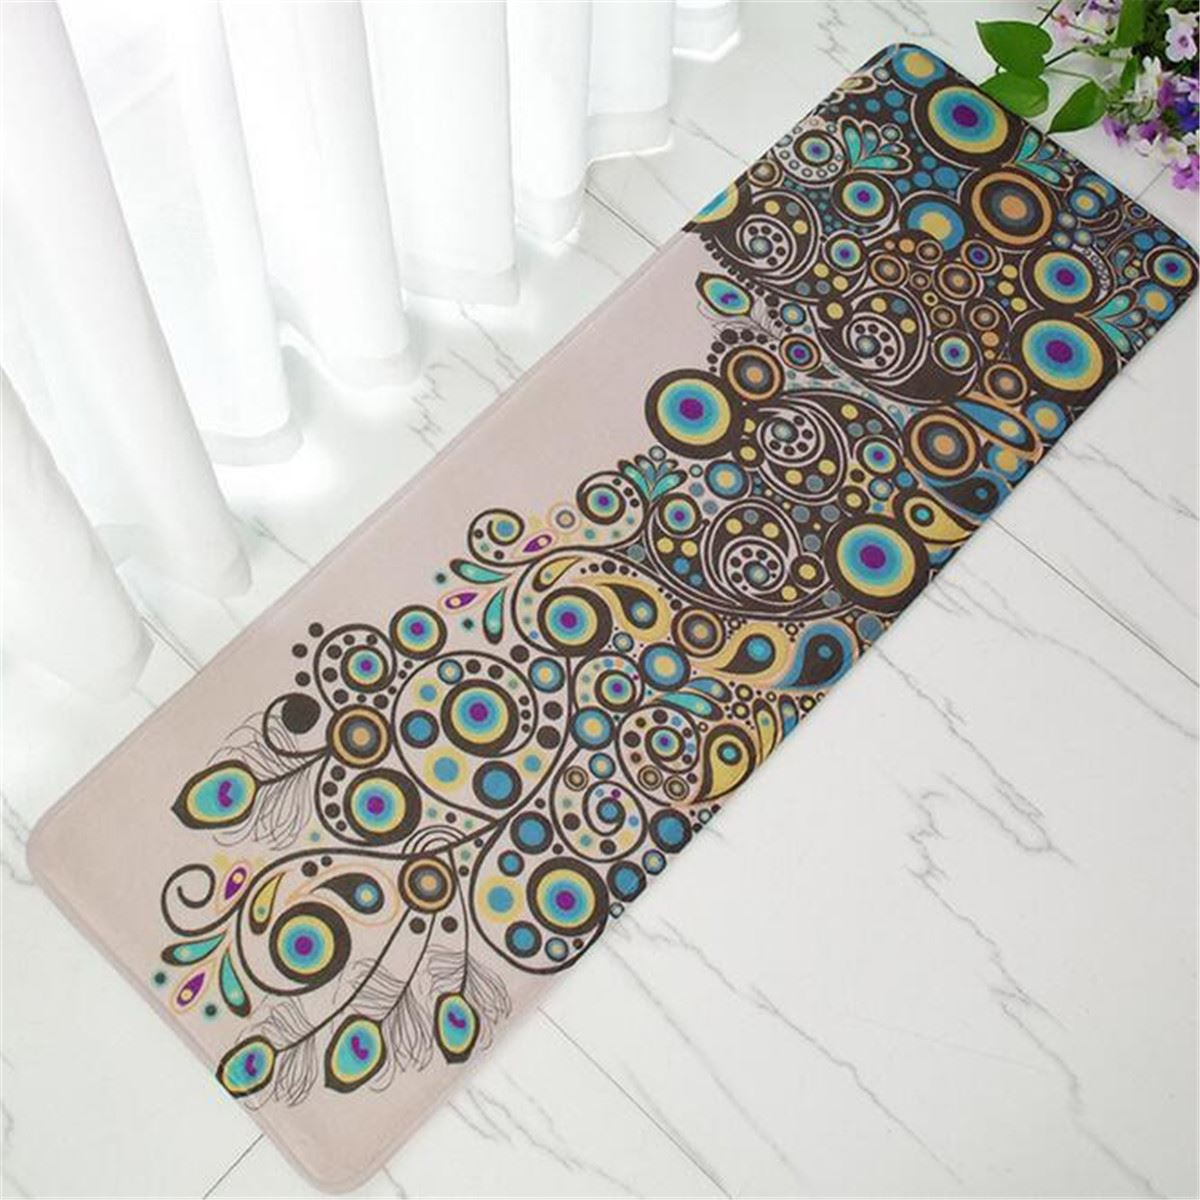 Peacock bathroom rug - Peacocks Bamboo Wood Floor Mat Print Bathroom Carpet Entrance Doormat Rug Anti Slip Rectangular Bedroom